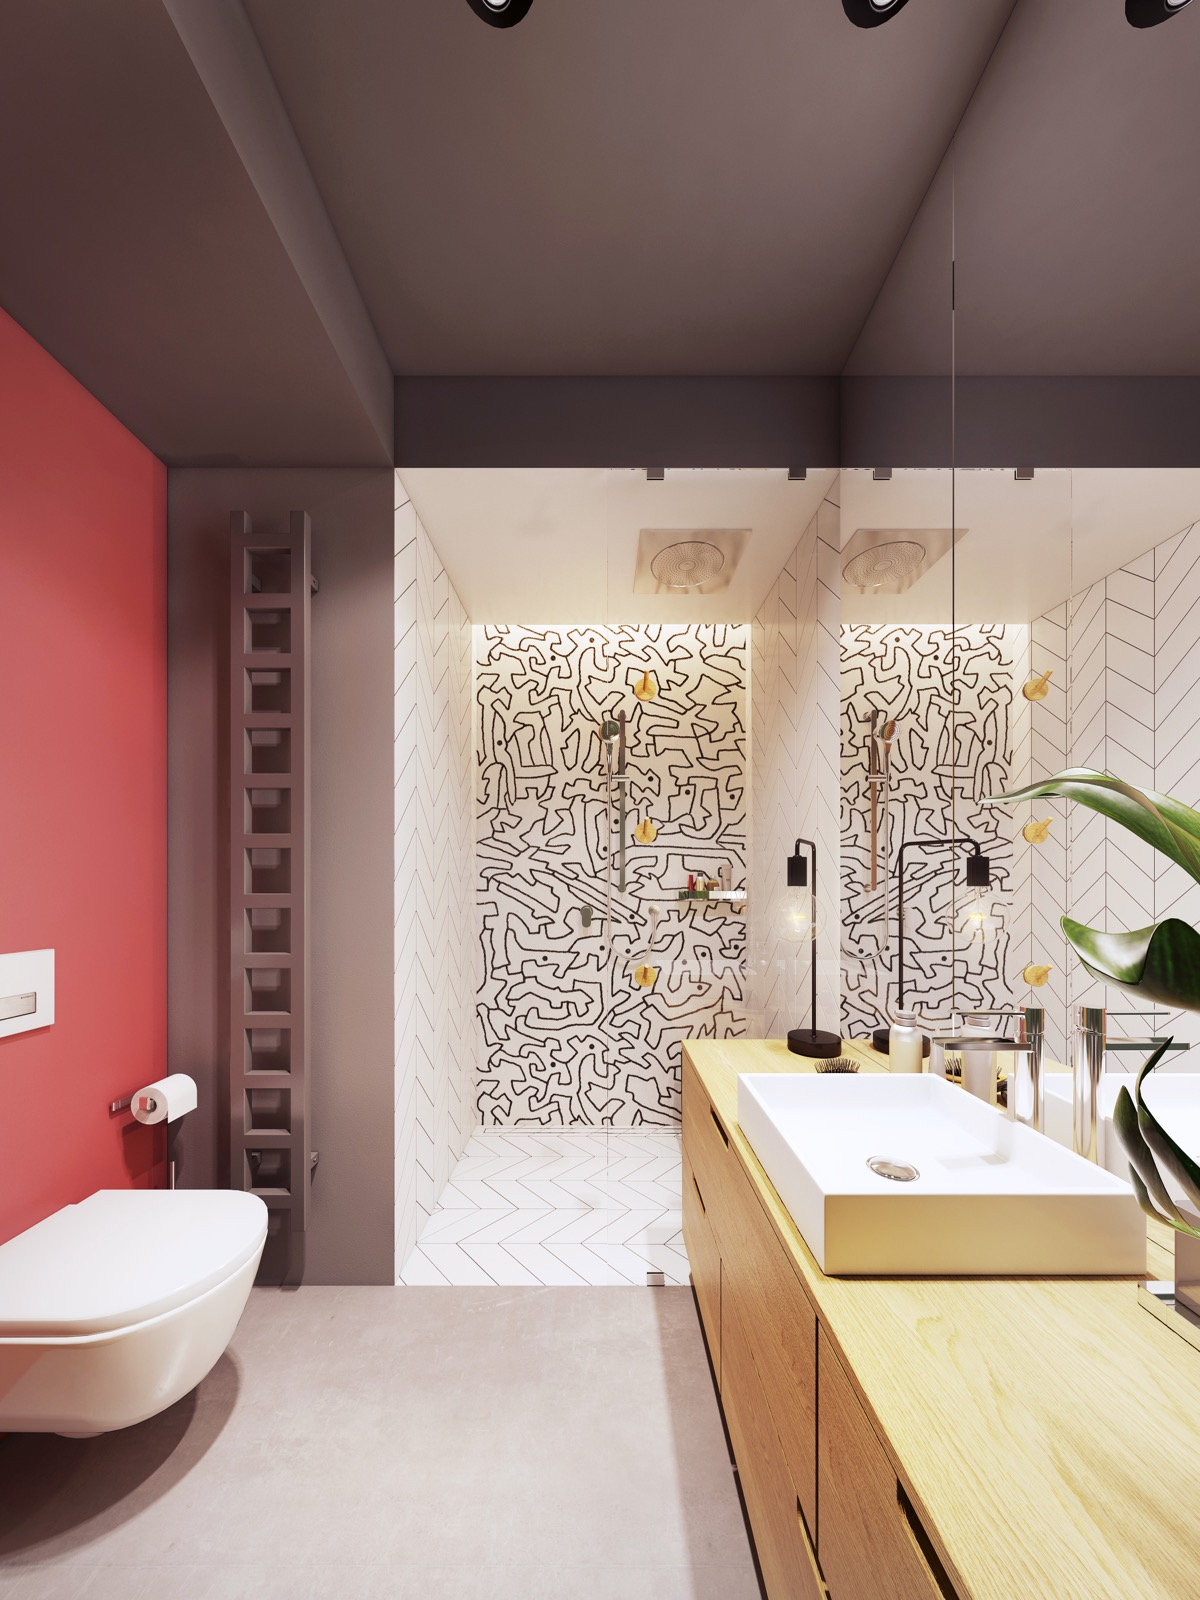 Pink Accent Wall In Bathroom With Black And White Tile Shower Interior Design Ideas